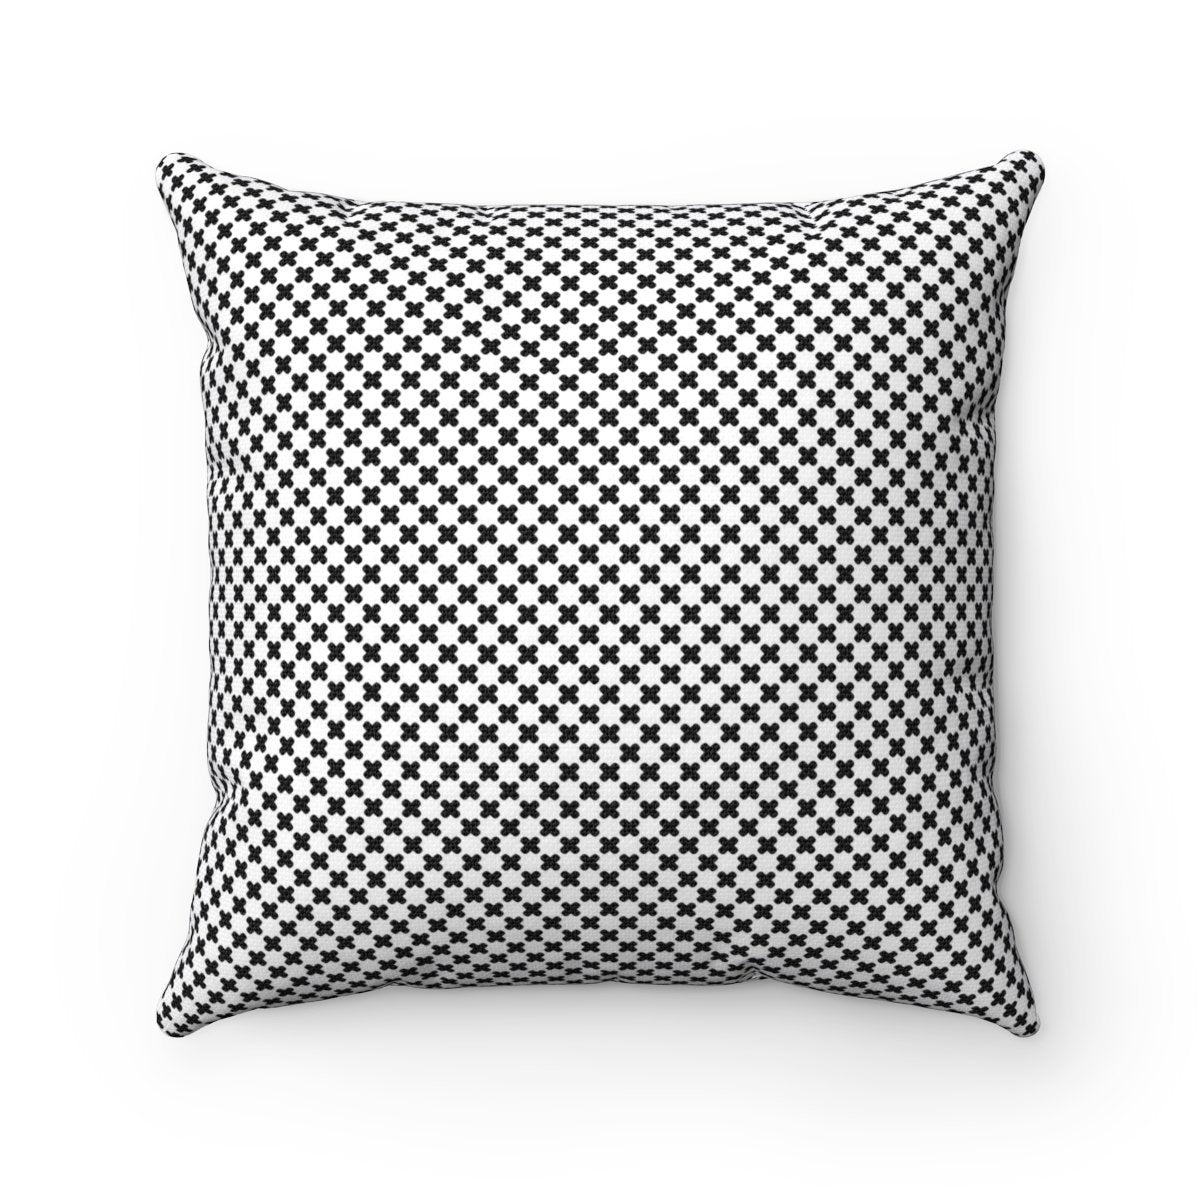 Black and White polka crosses decorative cushion cover-Home Decor - Decorative Accents - Pillows & Throws - Decorative Pillows-Maison d'Elite-Très Elite